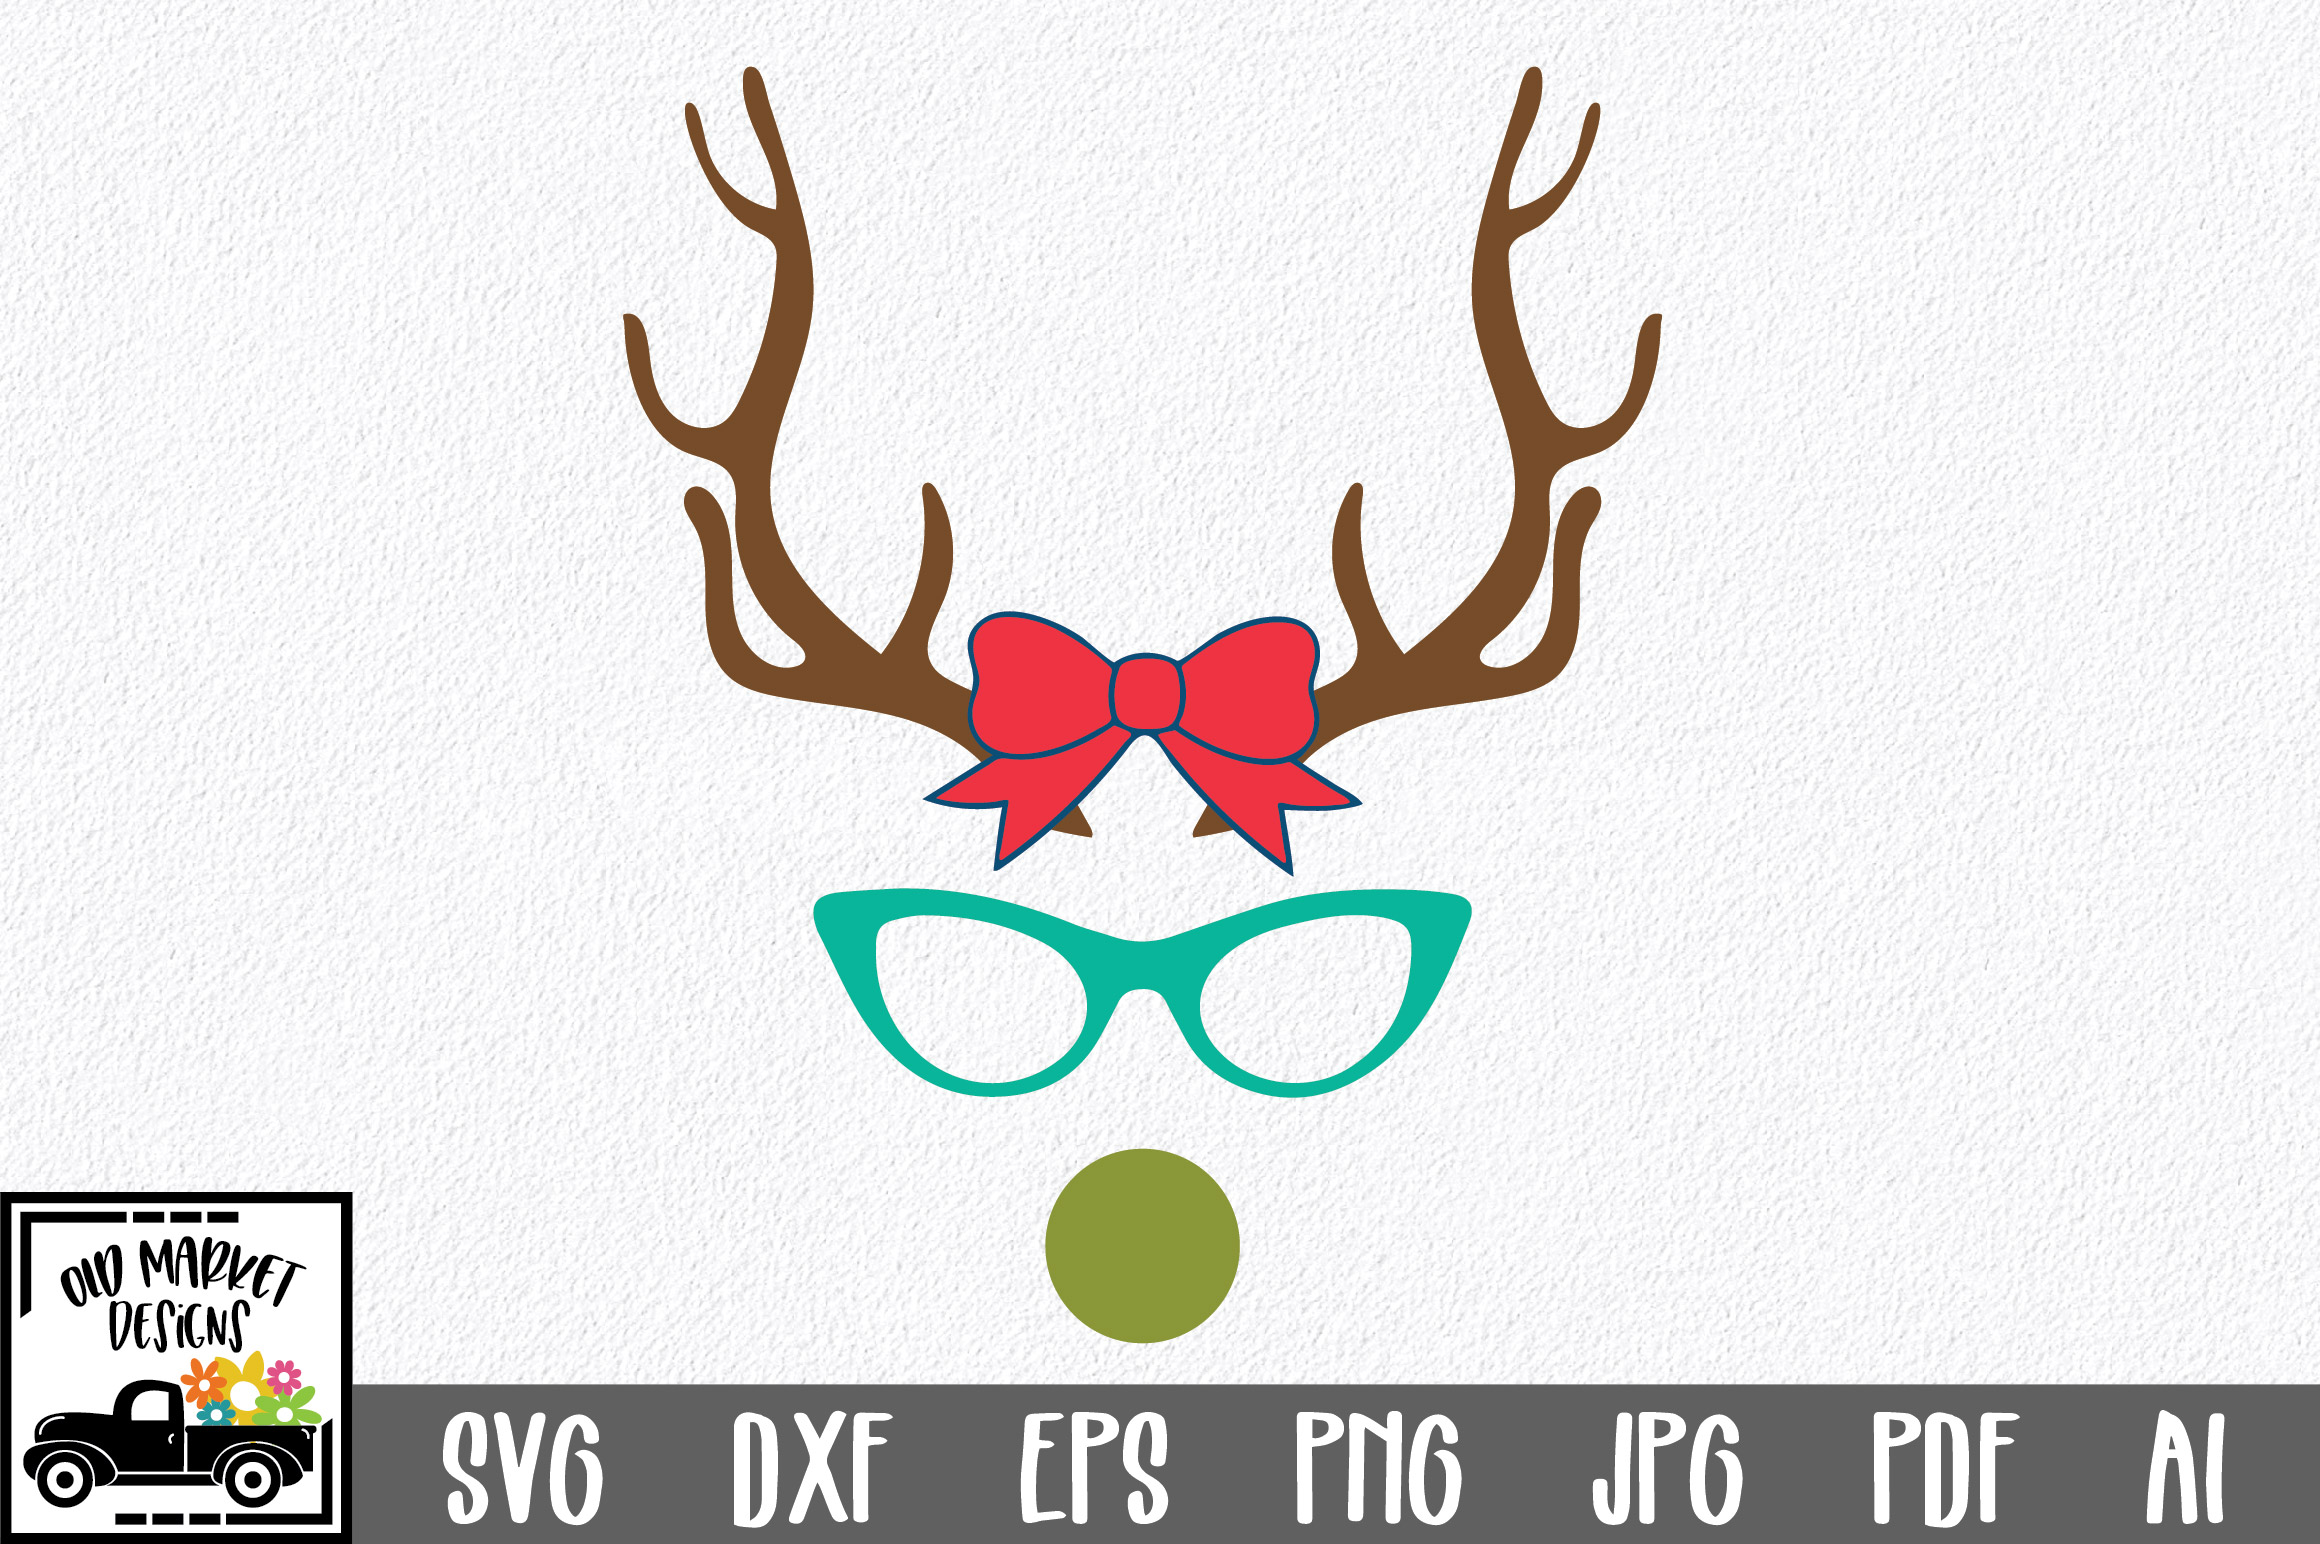 Download Free Christmas File Girl Reindeer Graphic By Oldmarketdesigns for Cricut Explore, Silhouette and other cutting machines.